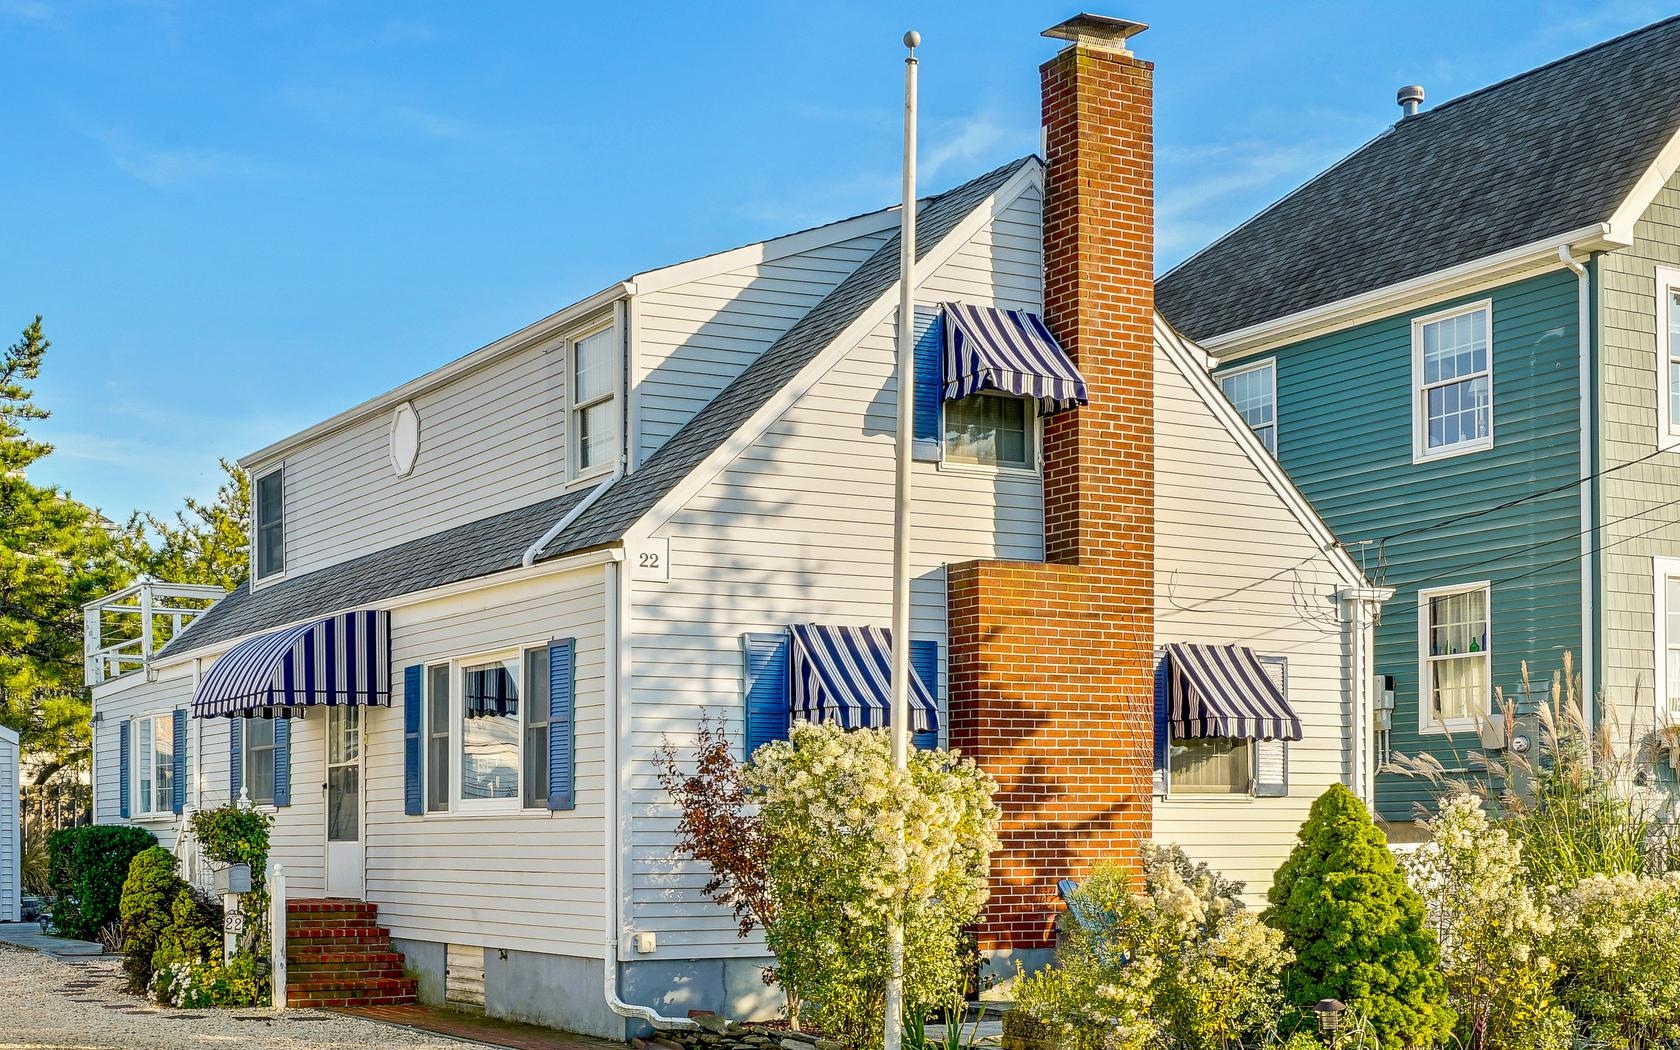 Single Family Home for Sale at Exquisitely Designed Shore Colonial 22 2nd Ave Manasquan, New Jersey, 0873 United States